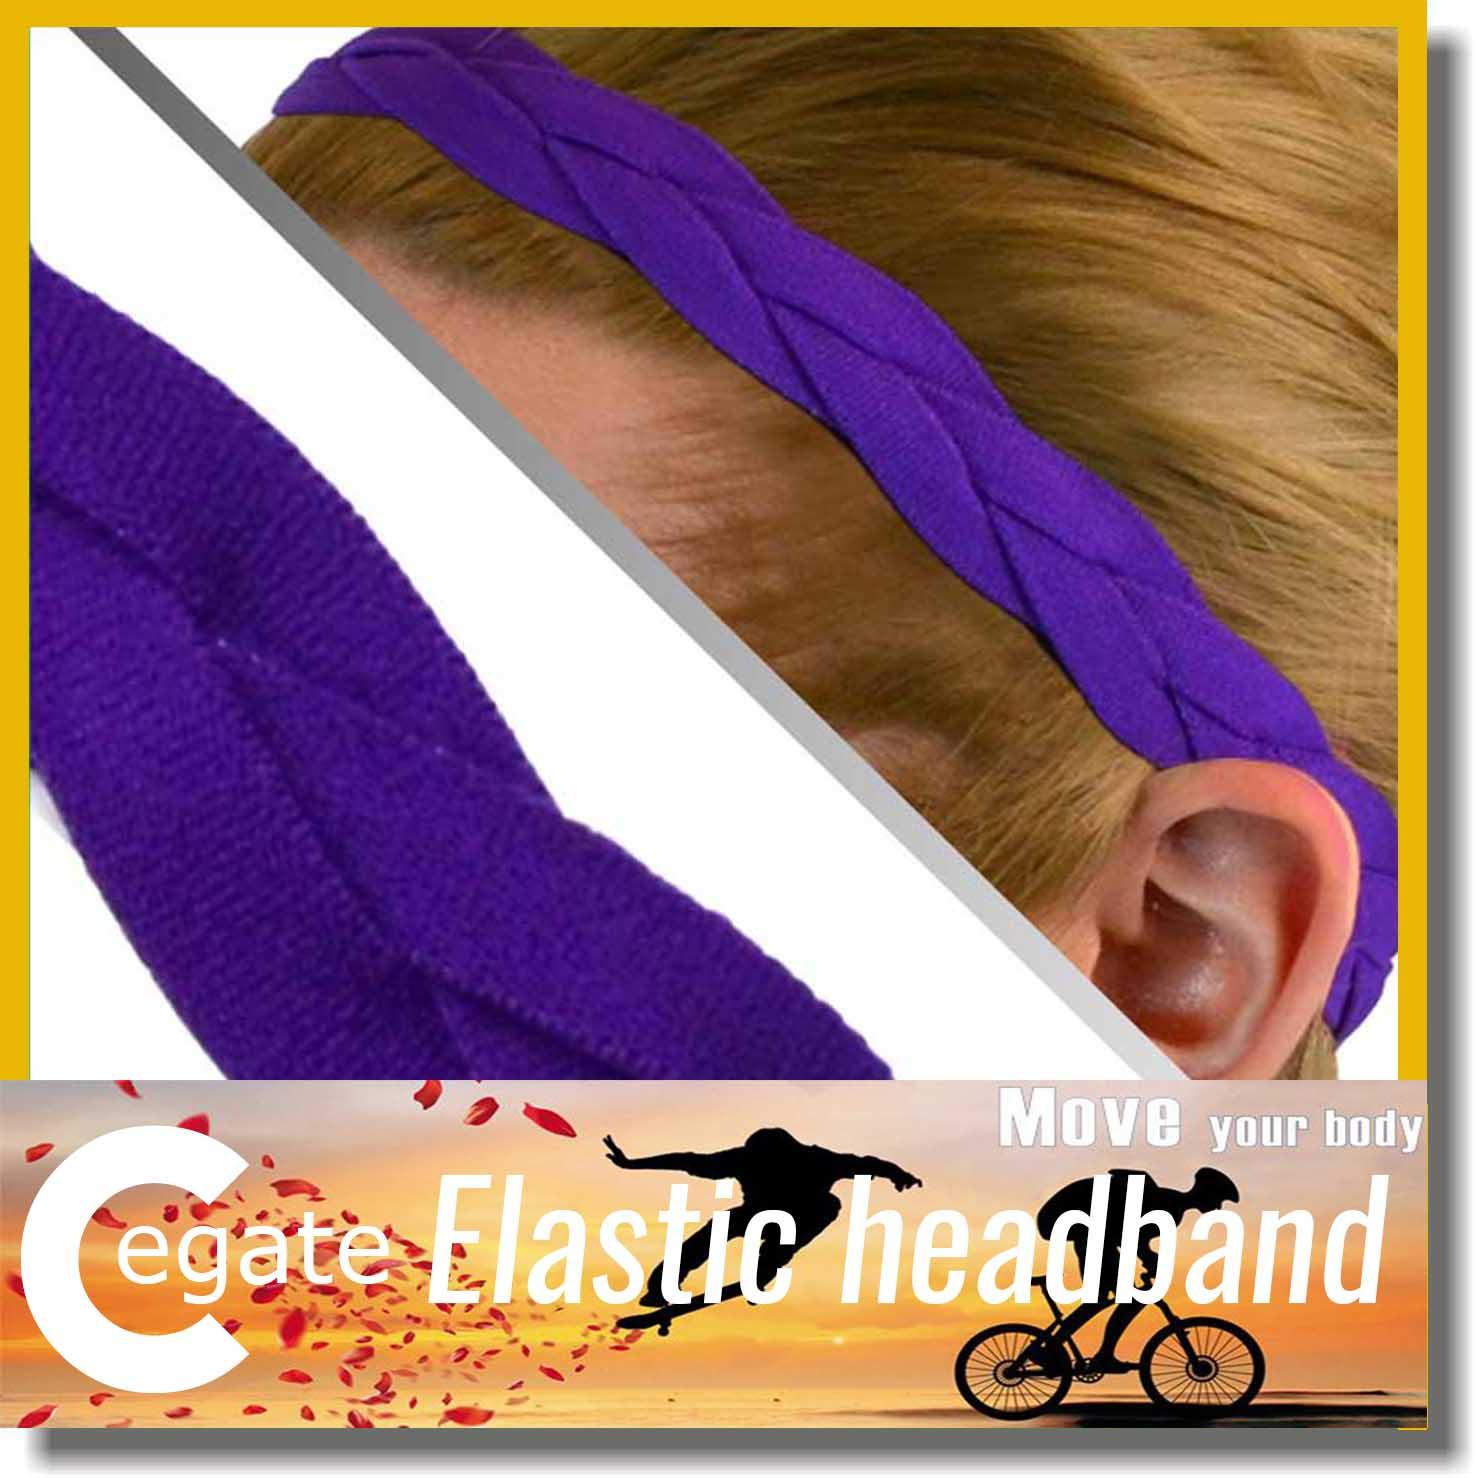 Wholesale outdoor sport headband different colored elastic weave braided headband for women free shipping